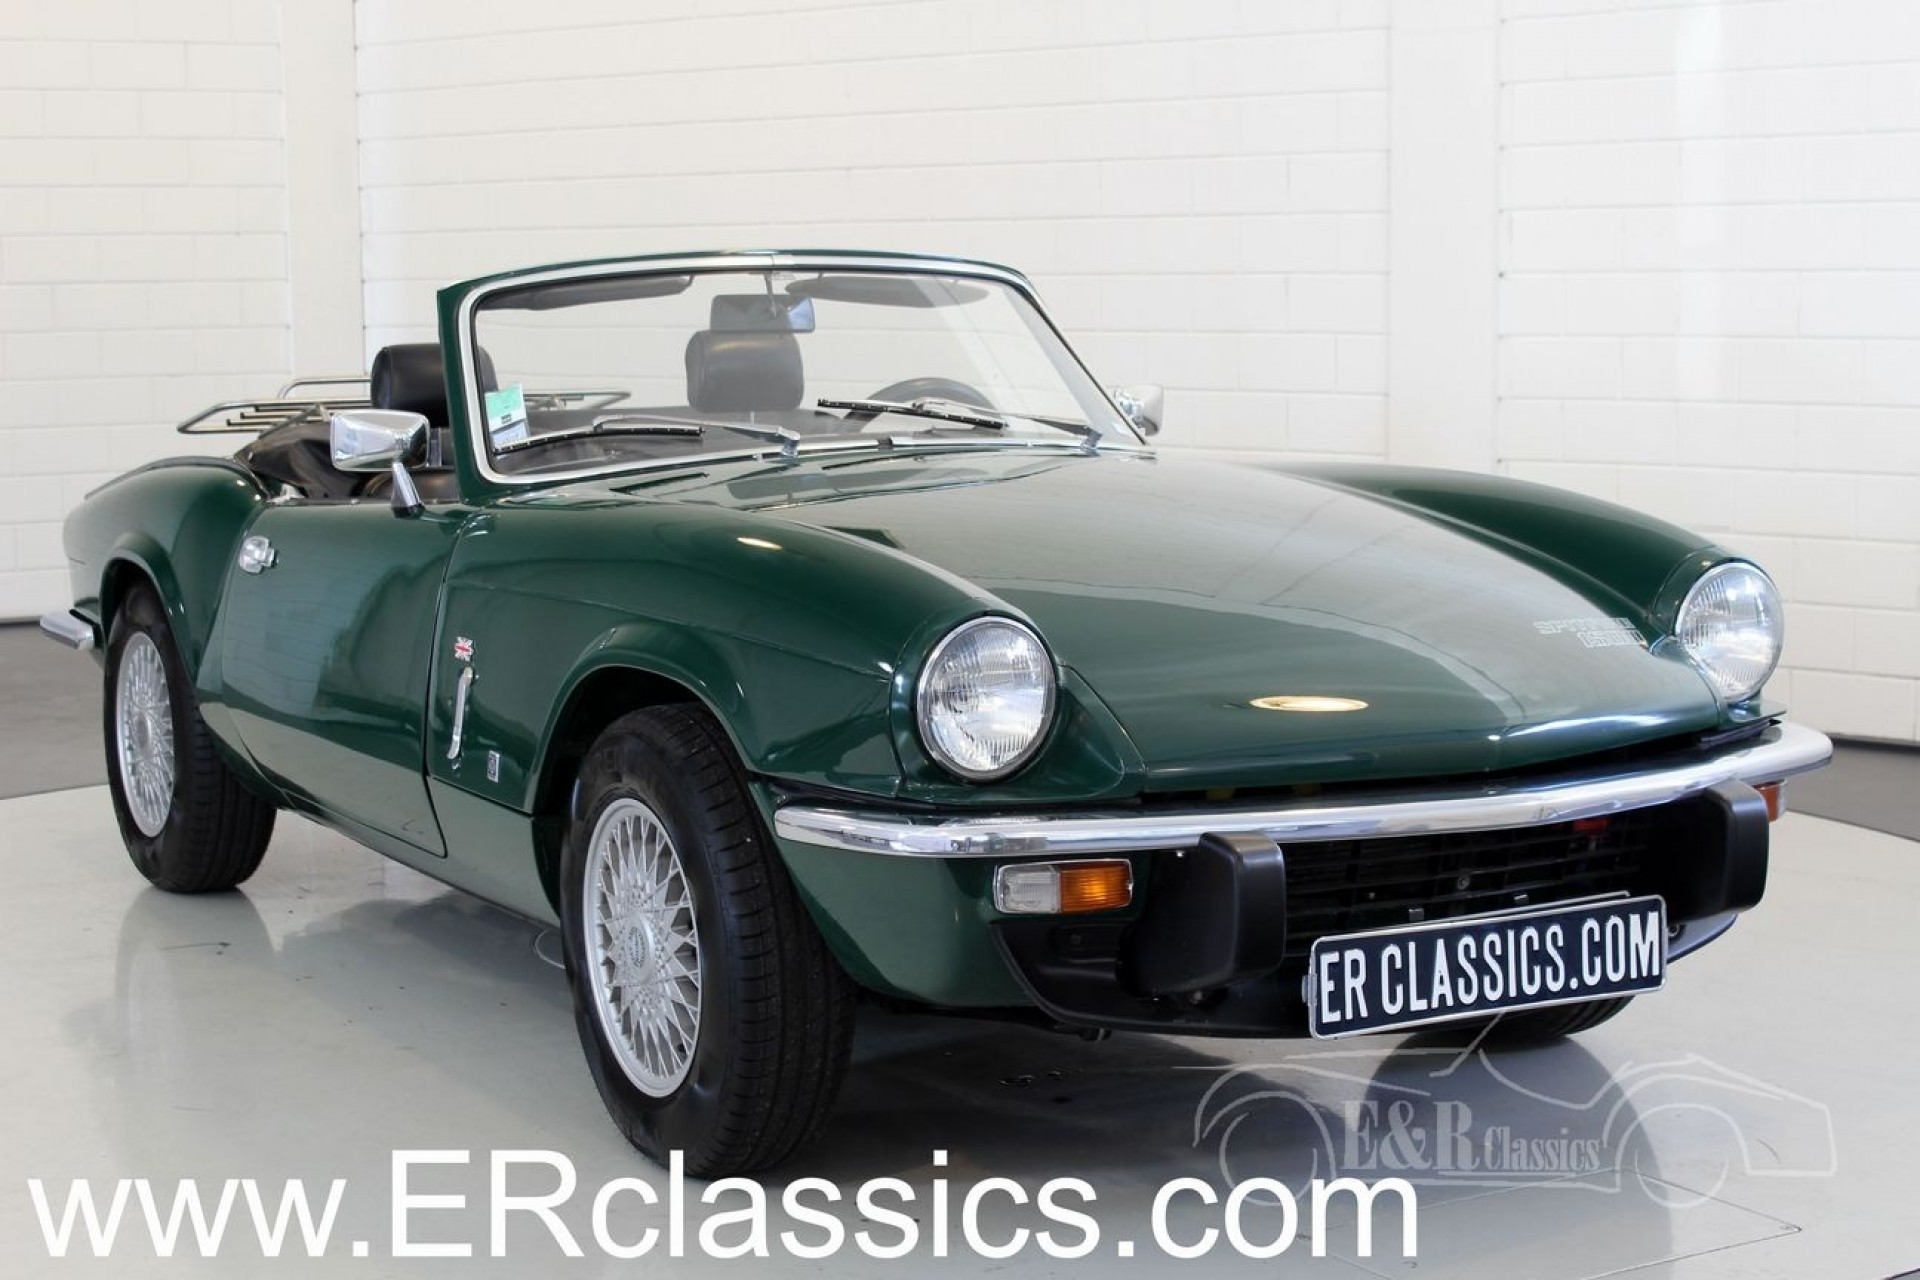 Triumph Spitfire cabriolet 1975 for sale at ERclassics